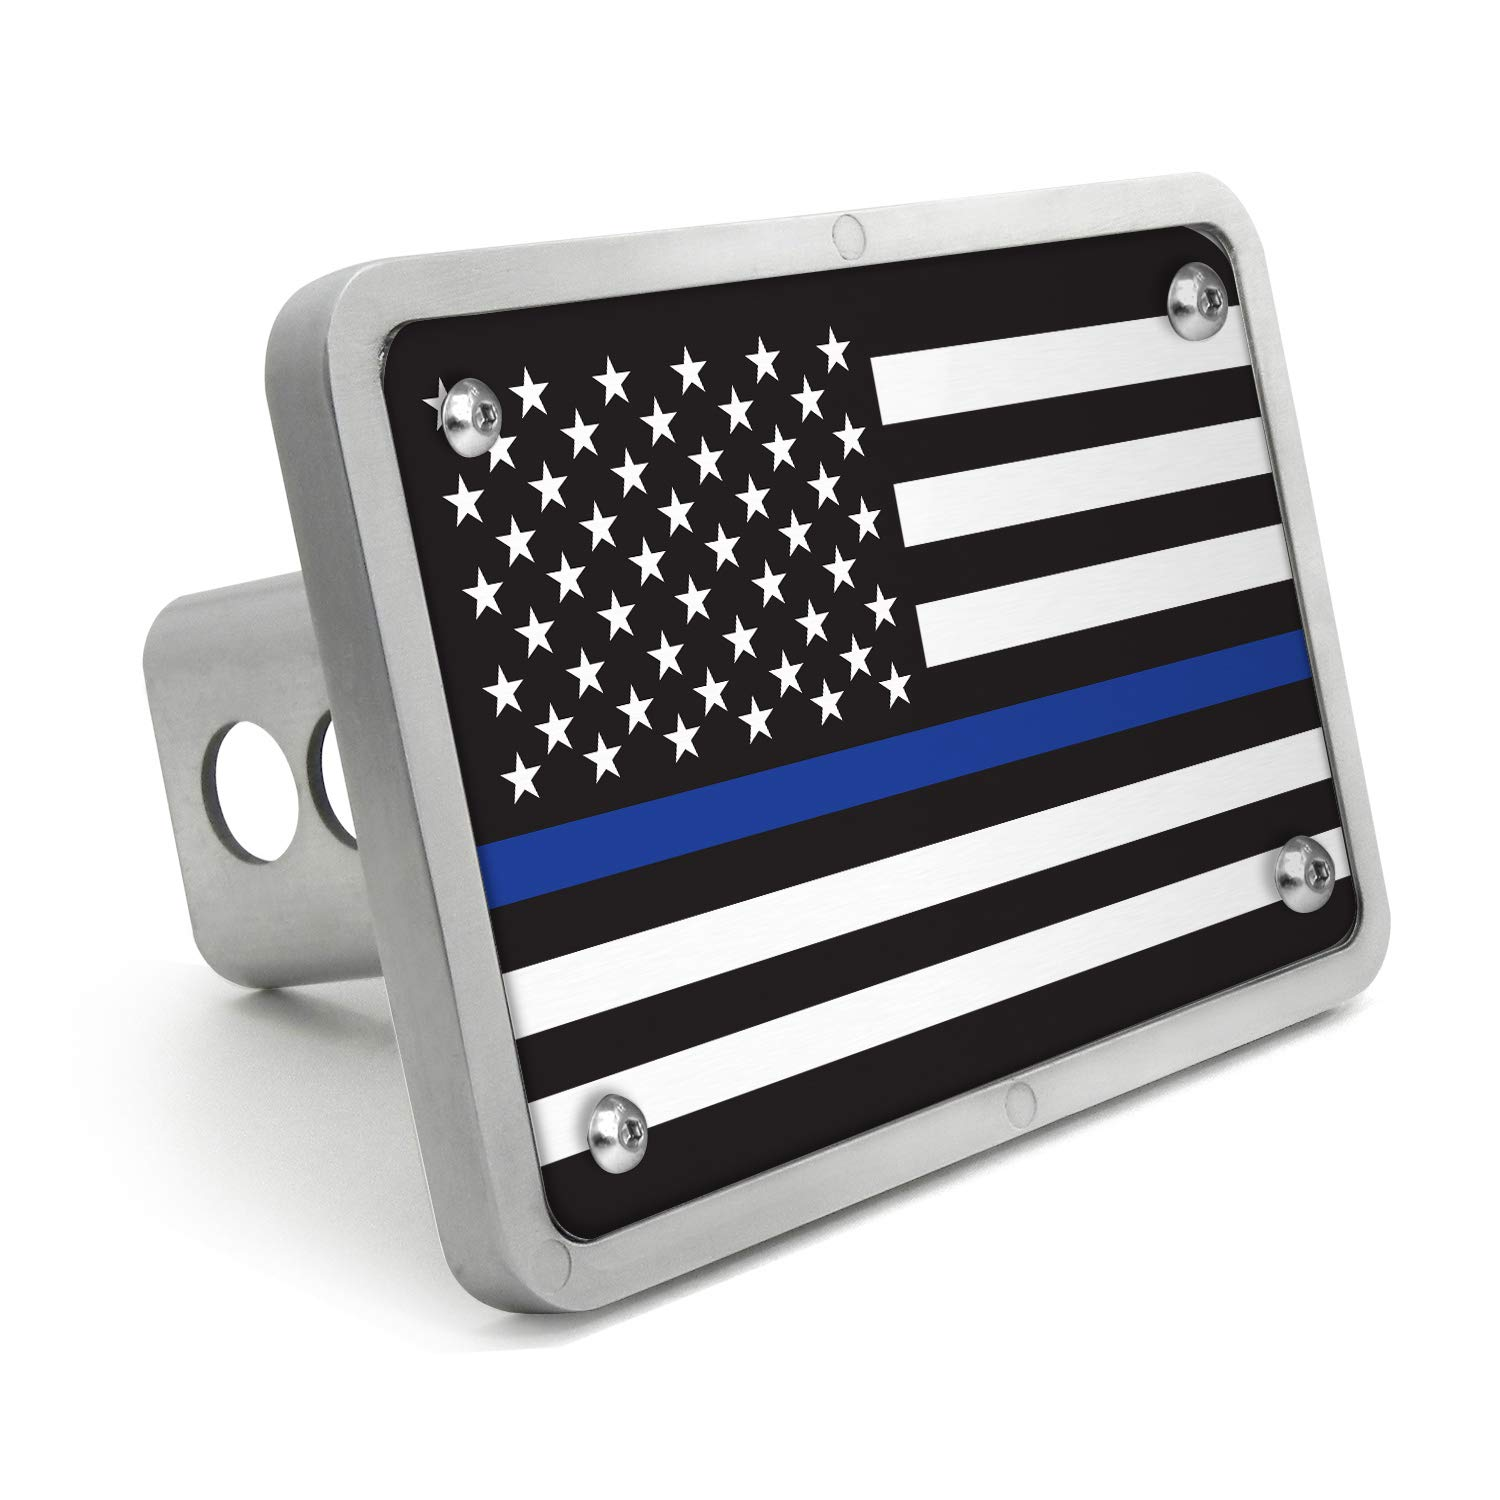 Graphics and More Thin Blue Line American Flag Tow Trailer Hitch Cover Plug Insert 1 1//4 inch 1.25